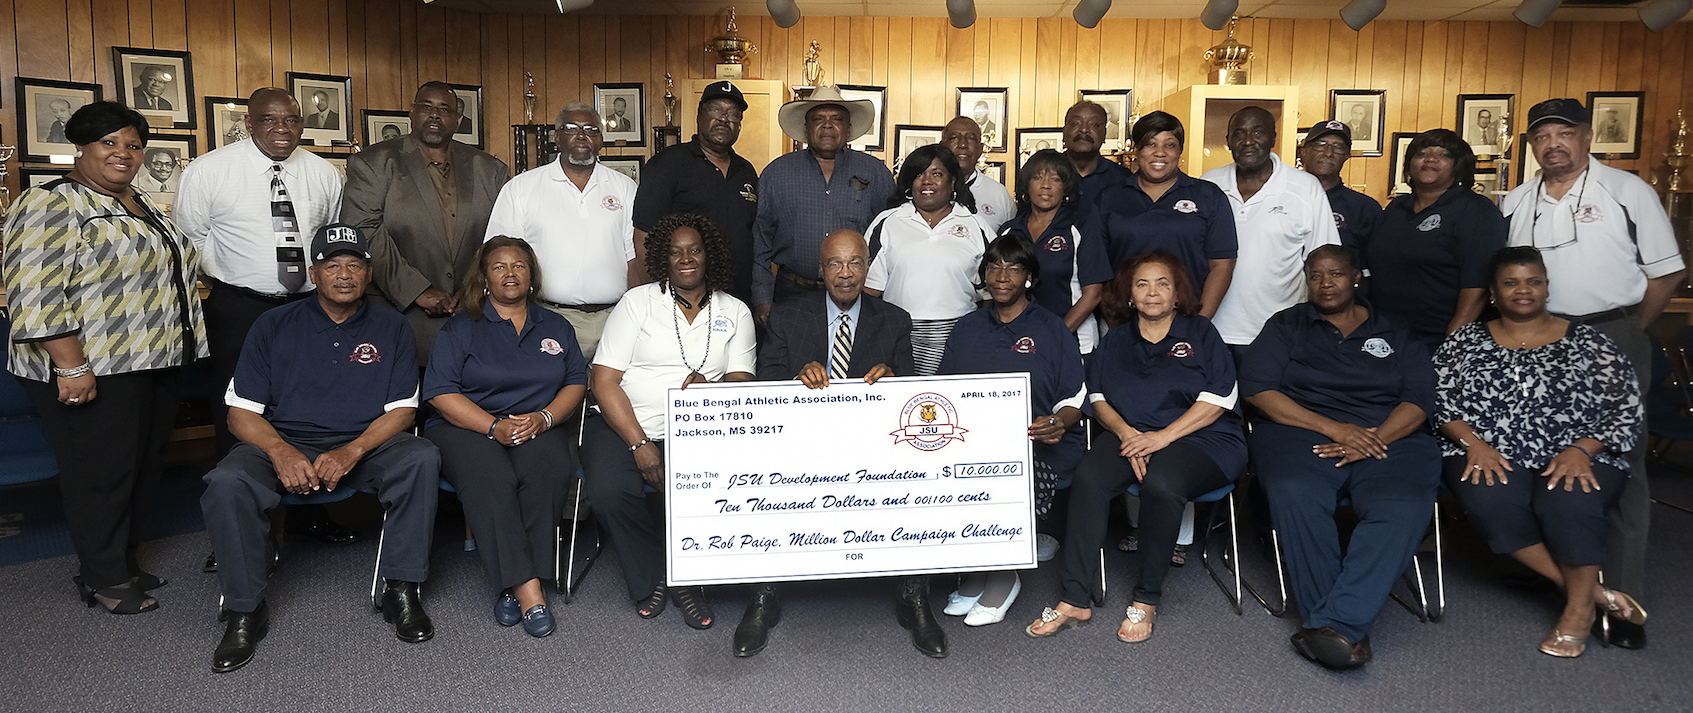 "The Blue Bengal Athletic Association joins in the fundraising effort at Jackson State University. JSU interim President Rod Paige, said, ""It shows people have a great love for this university, not an inactive love but an active love by working and making such a significant contribution."" (Photo by Charles A. Smith/JSU)"